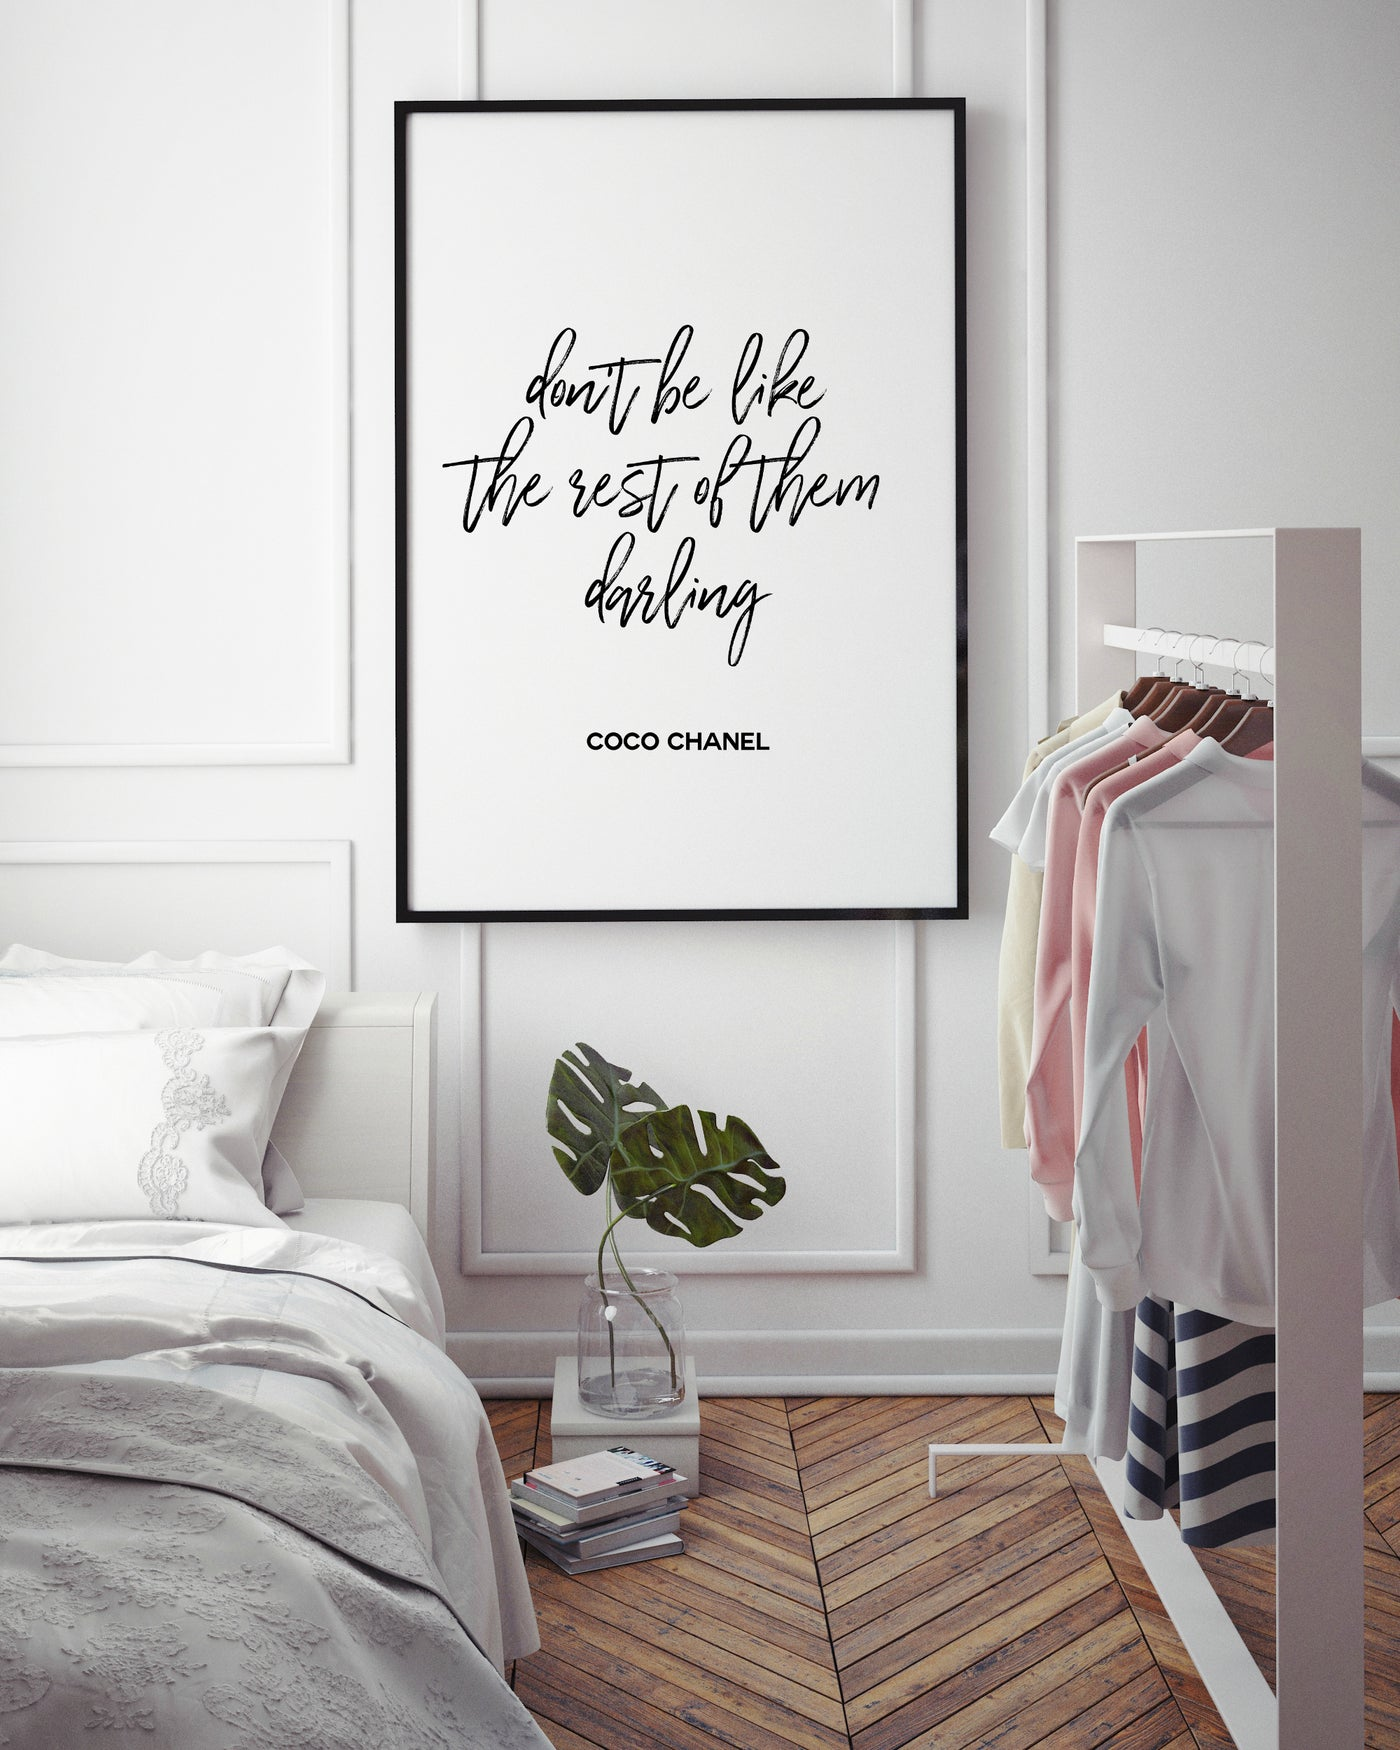 Don't be like the rest of them darling | Fashion Quote - Pretty in Print Art